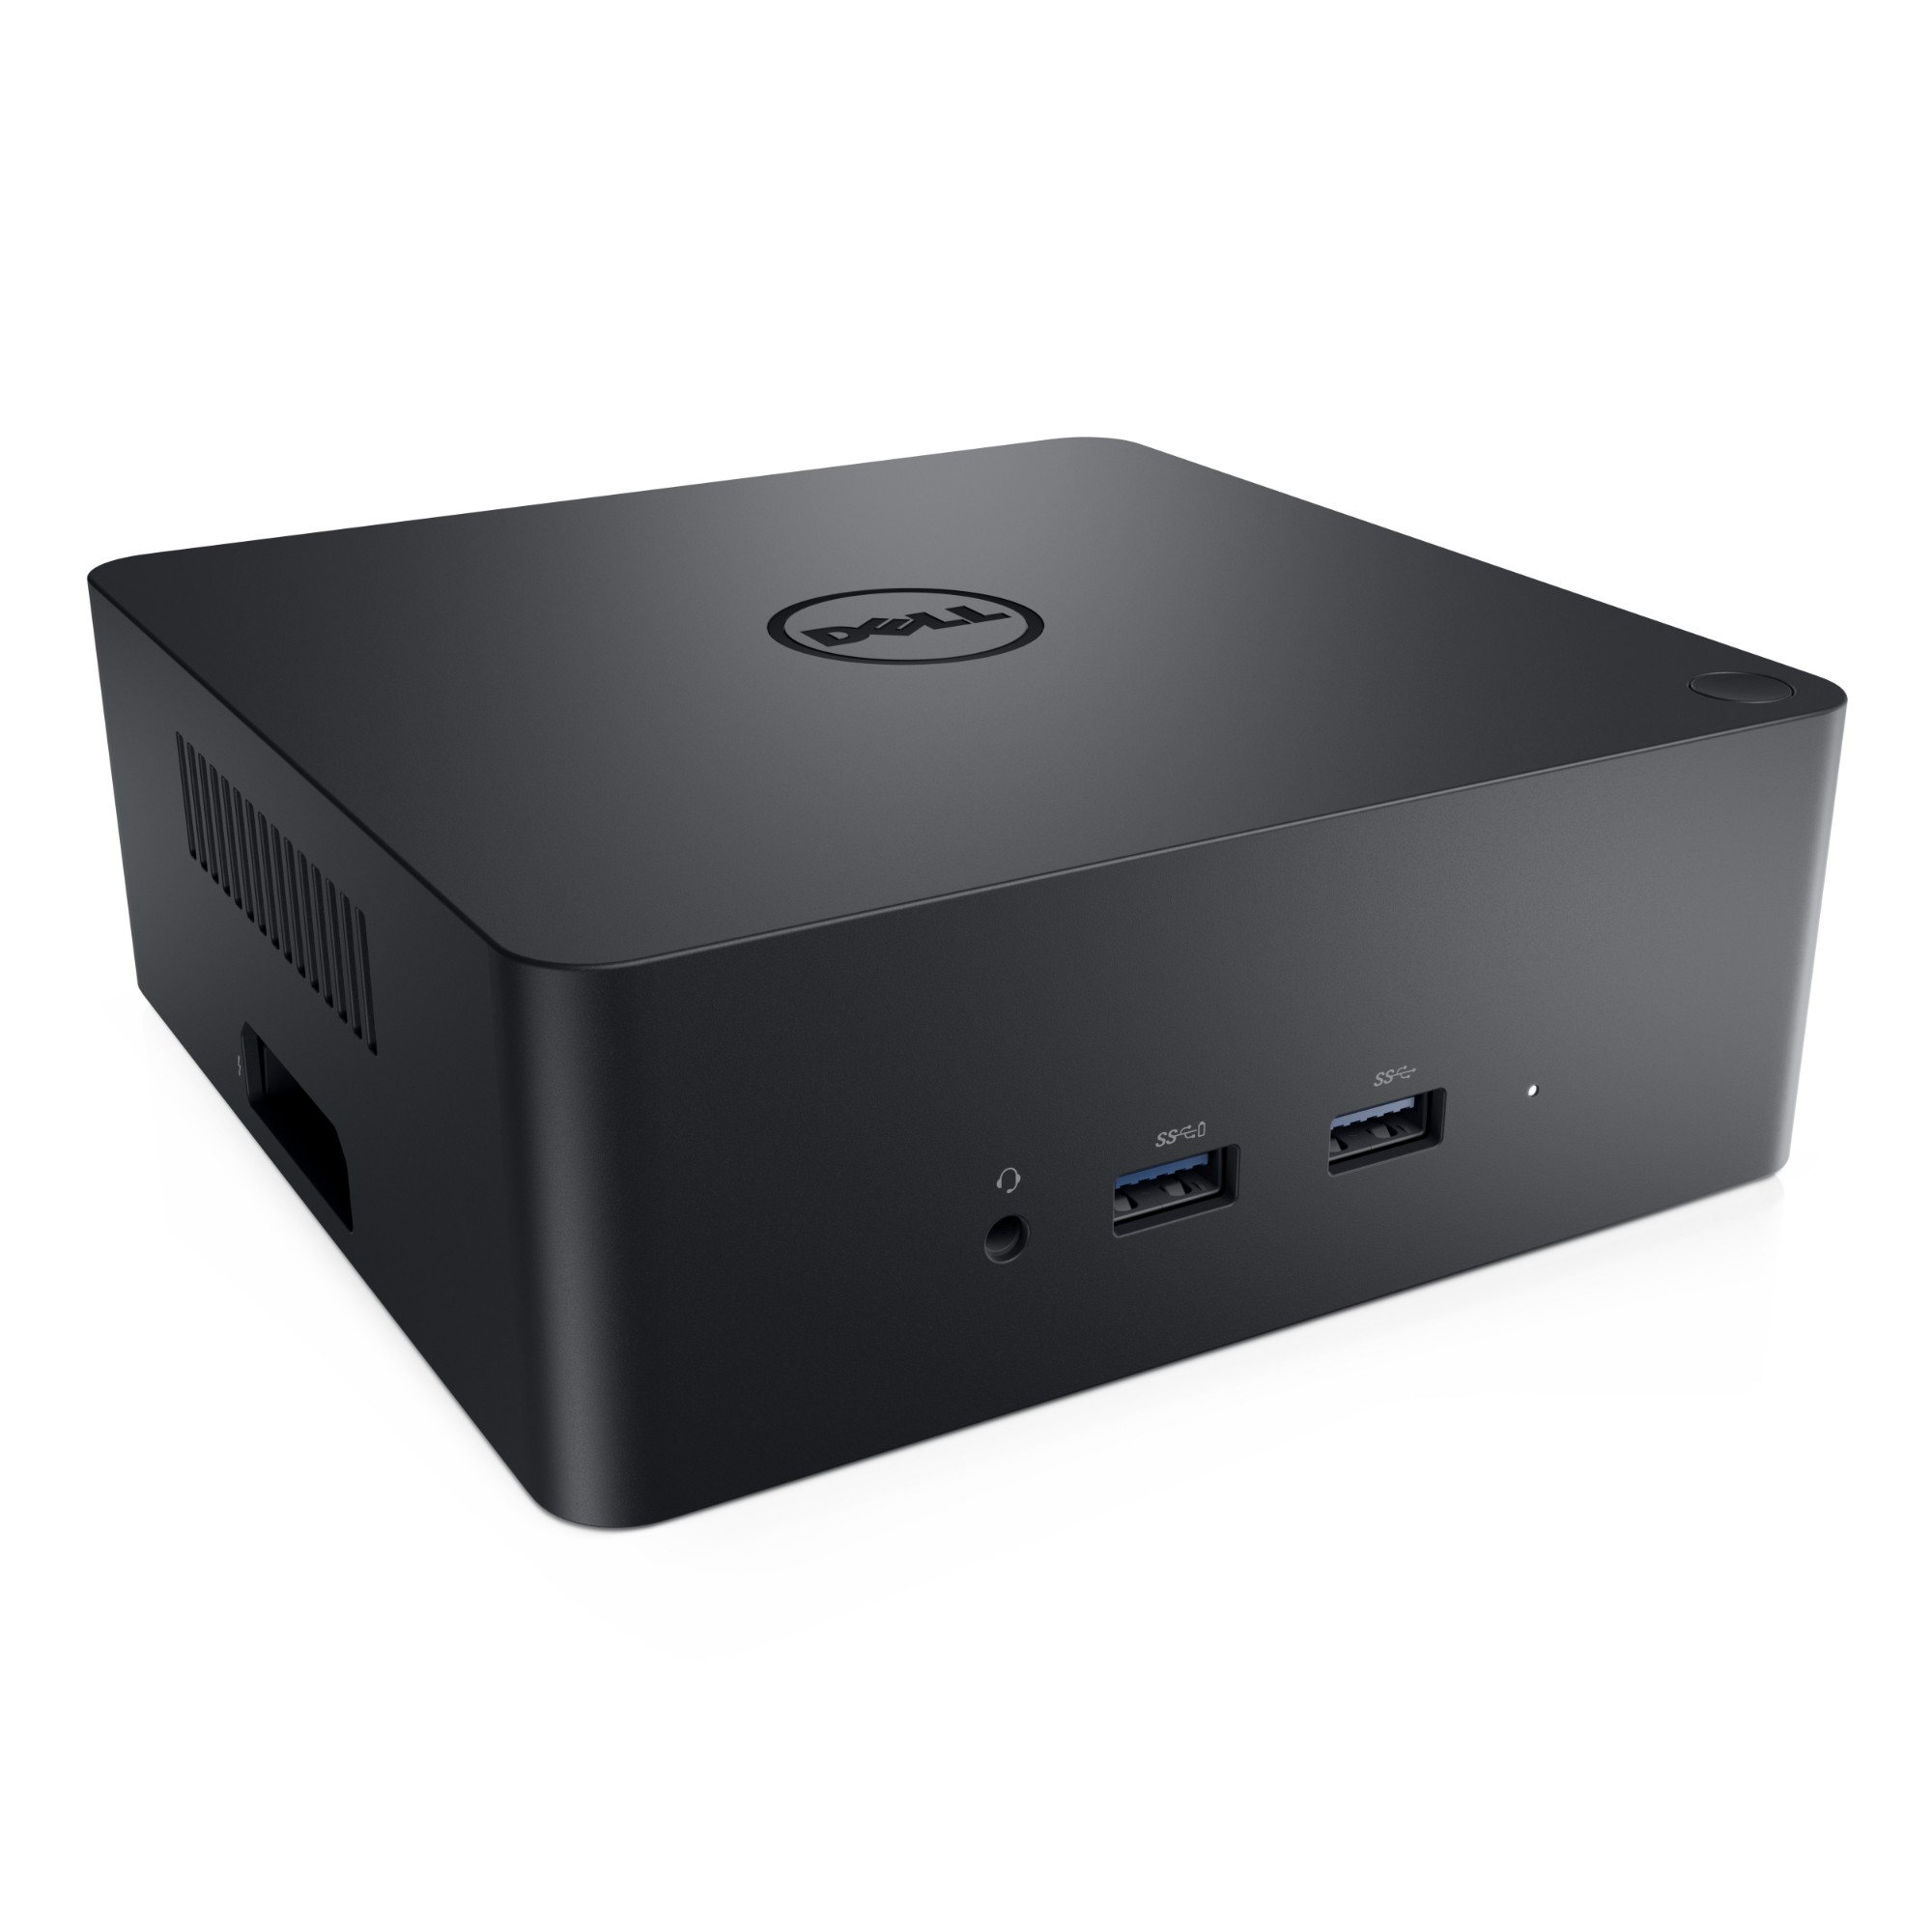 DELL TB18DC Wired USB 3.0 (3.1 Gen 1) Type-B Black